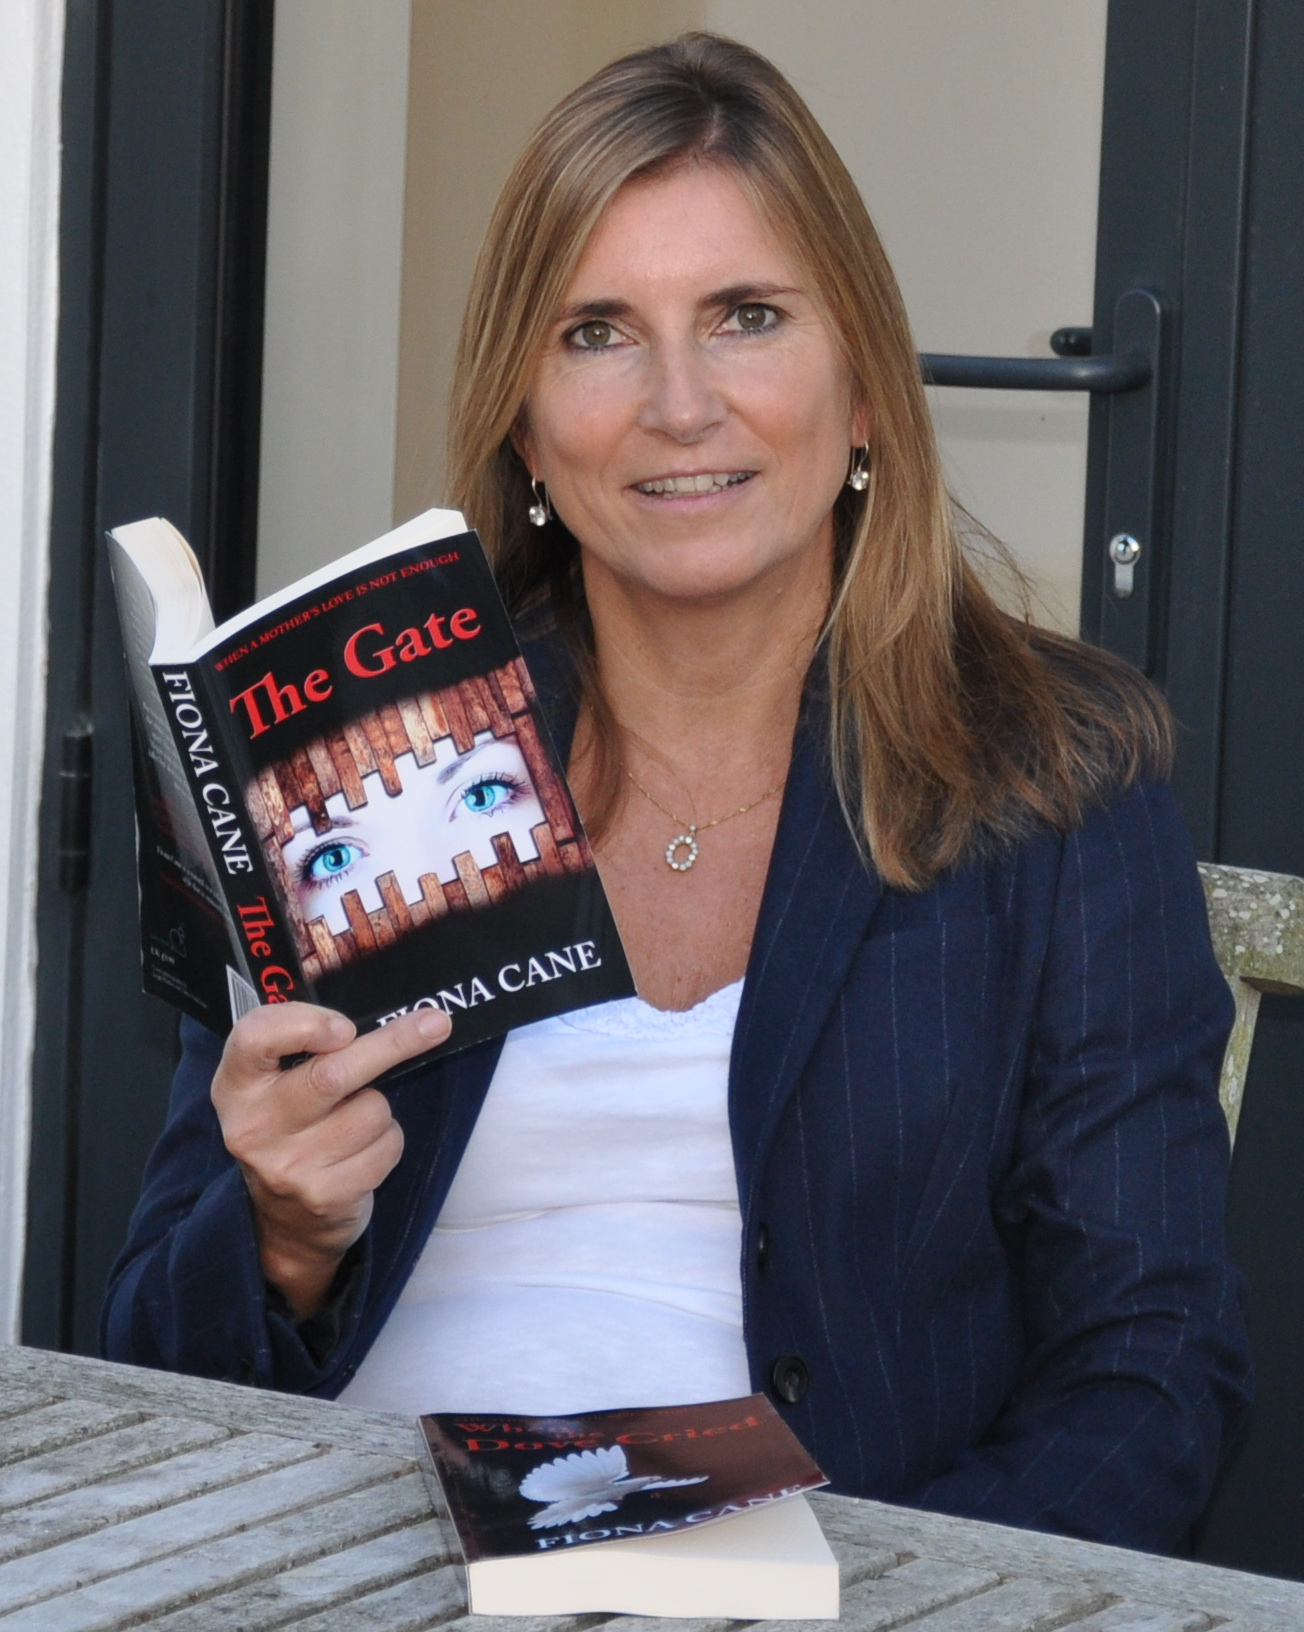 fiona cane with book giveaway.jpg